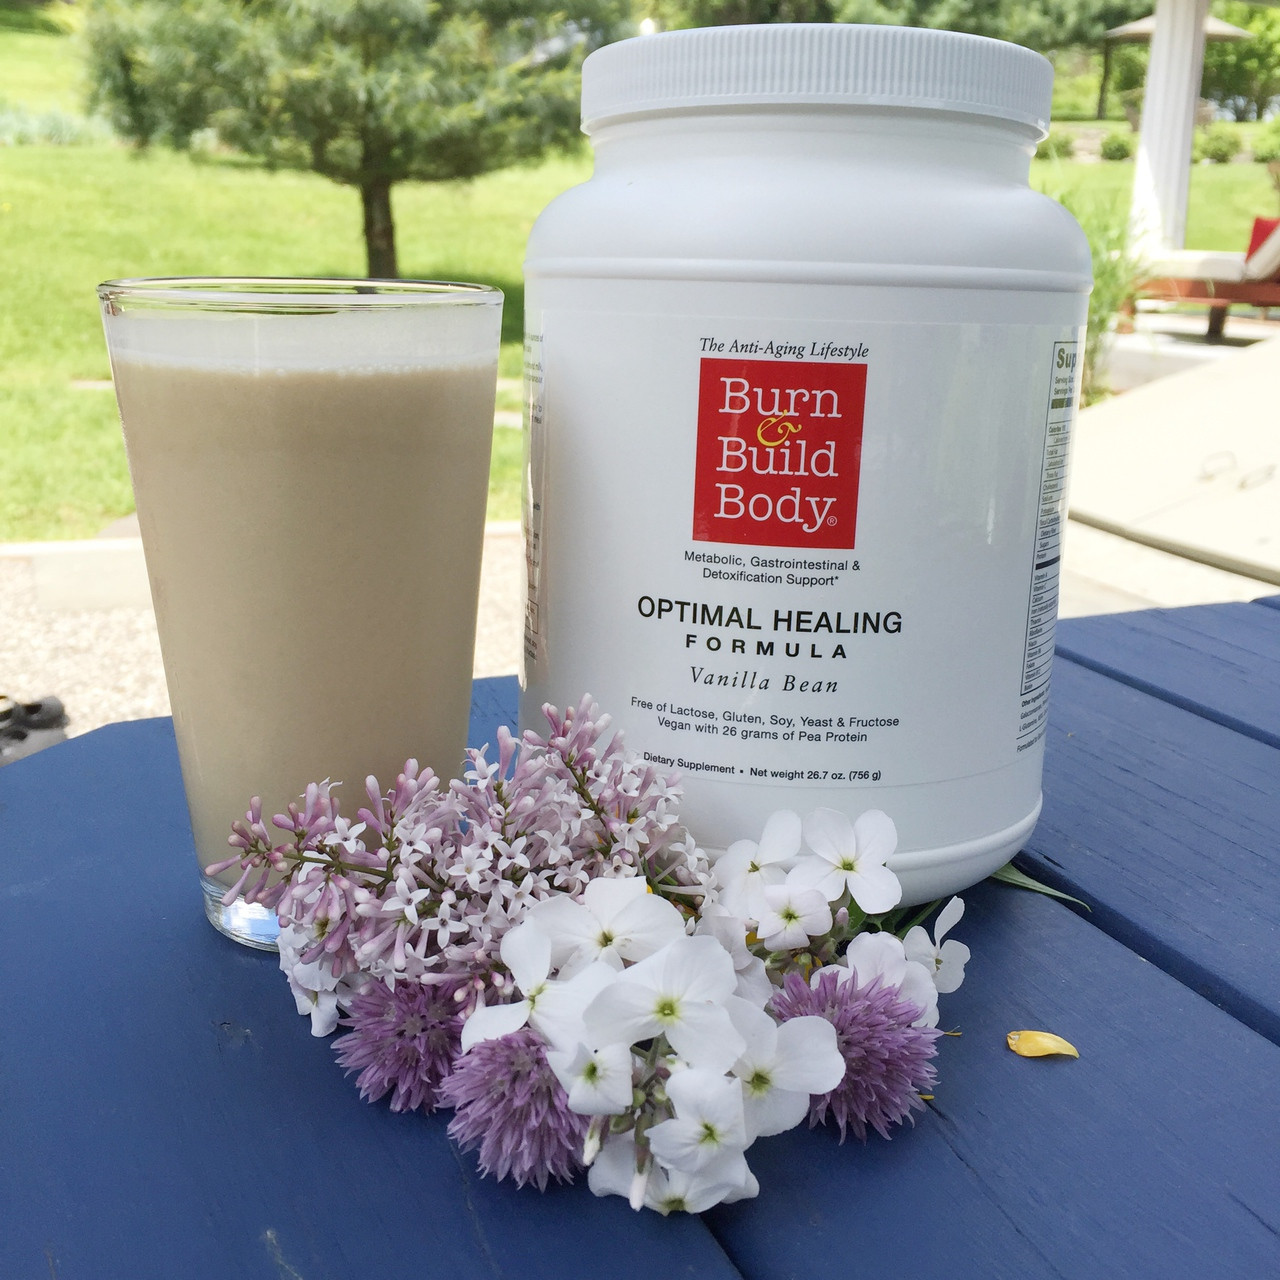 Optimal Healing Formula - with micronutrients for detoxification this is a superior meal or snack replacement. Our vanilla flavored shake will support lean muscle, your metabolic system and remind you of that creamy vanilla shake you loved as a kid.